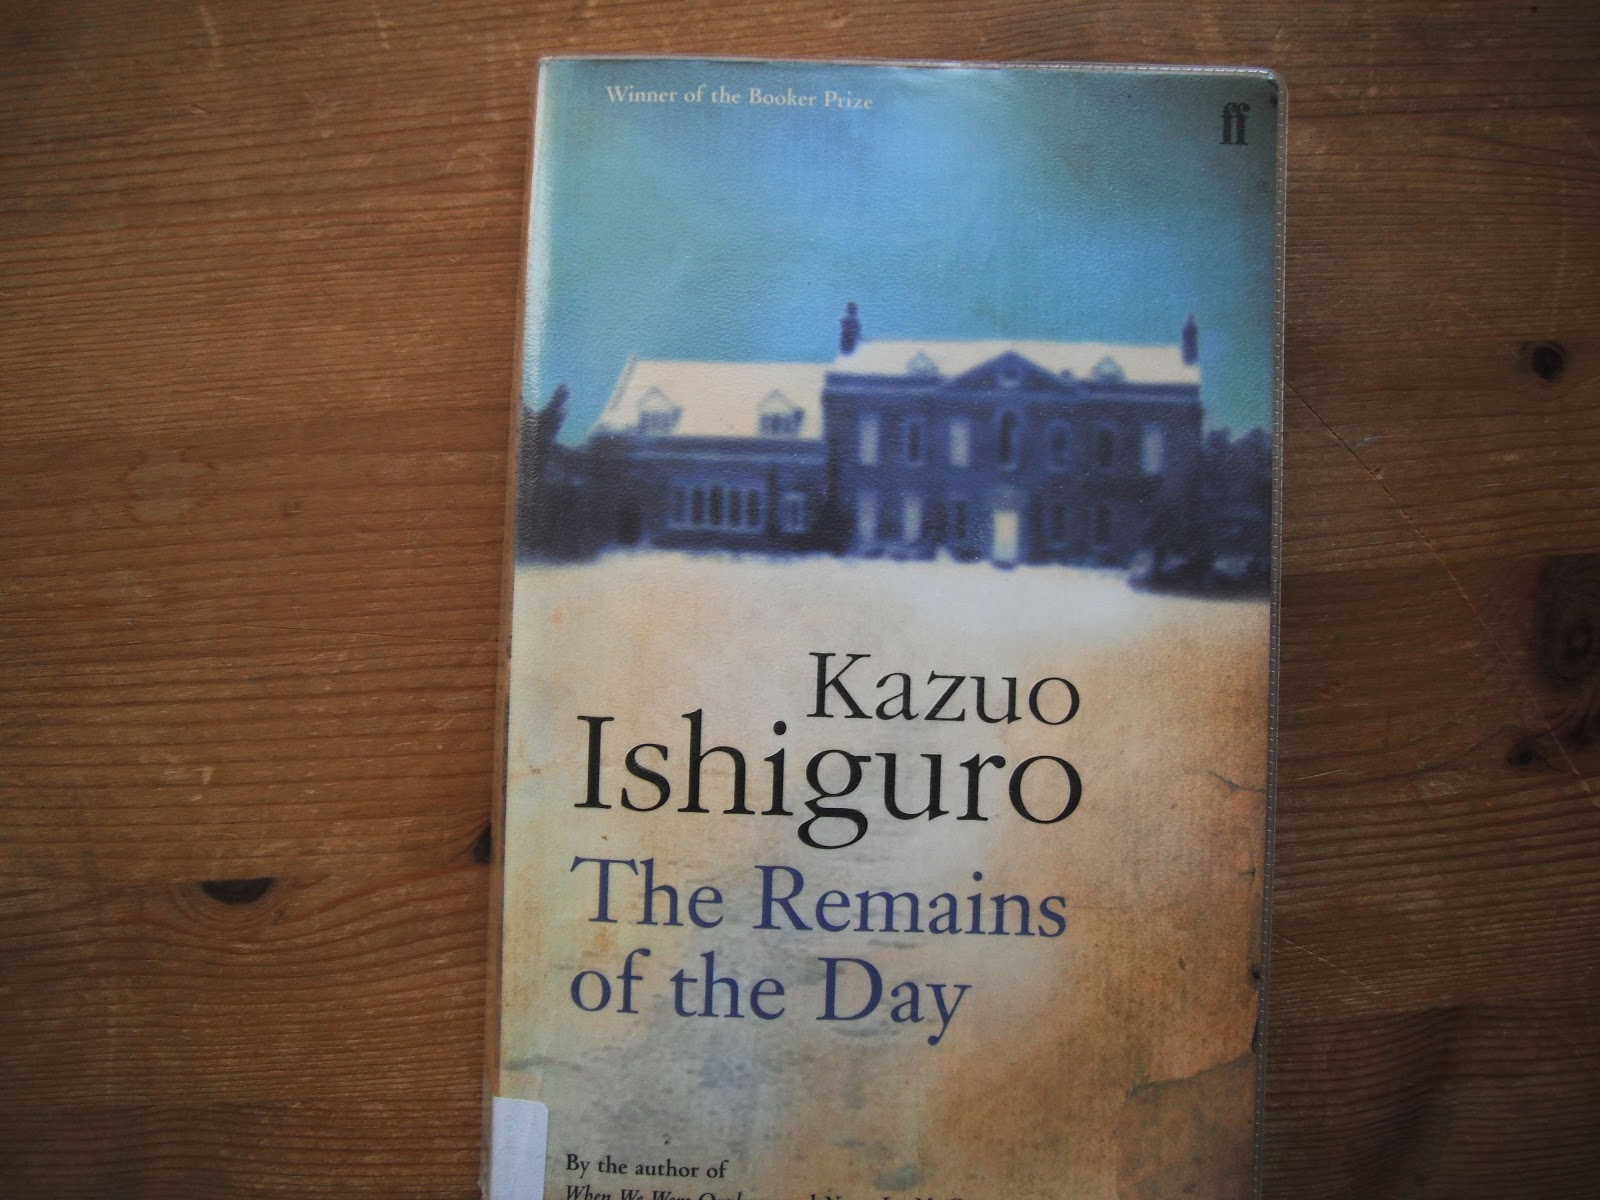 an analysis of stevens flashbacks in the novel the remains of the day by ishiguro The remains of the day movie reviews life depicted on both in kazuo ishiguros novel anddignity in remains of the mr stevens remains committed.